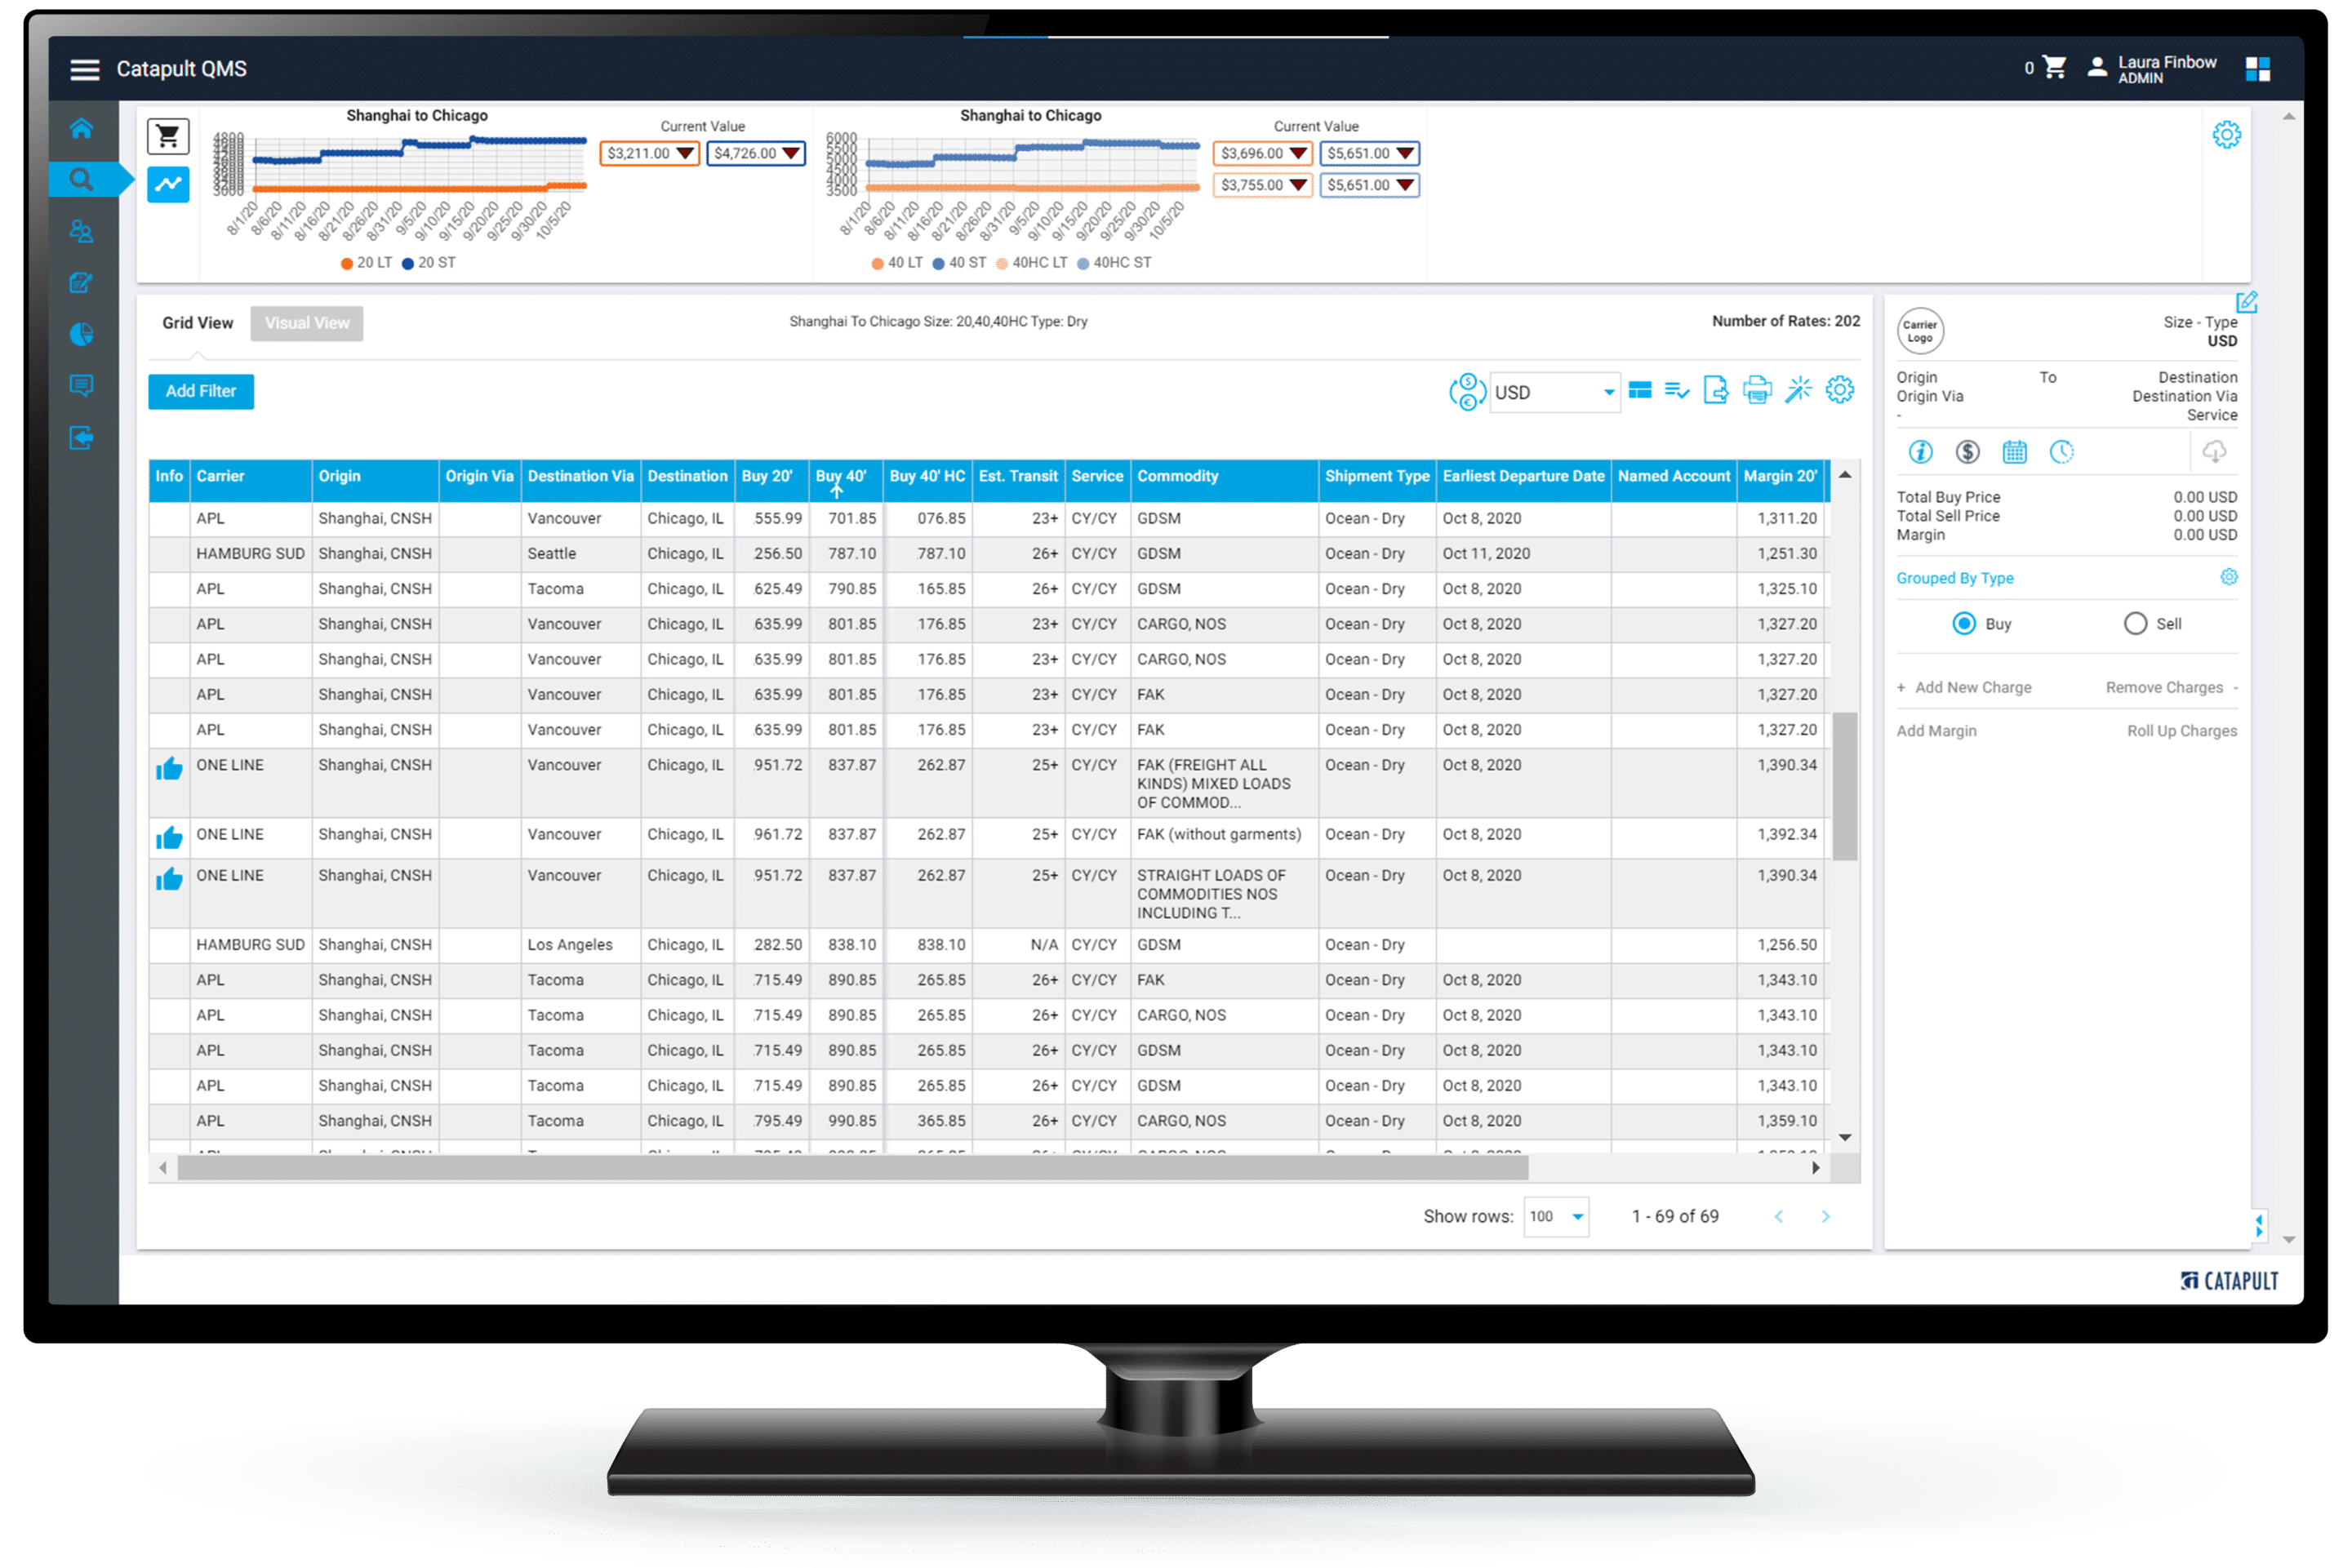 Catapult Freight Rates Software on a Computer Screen